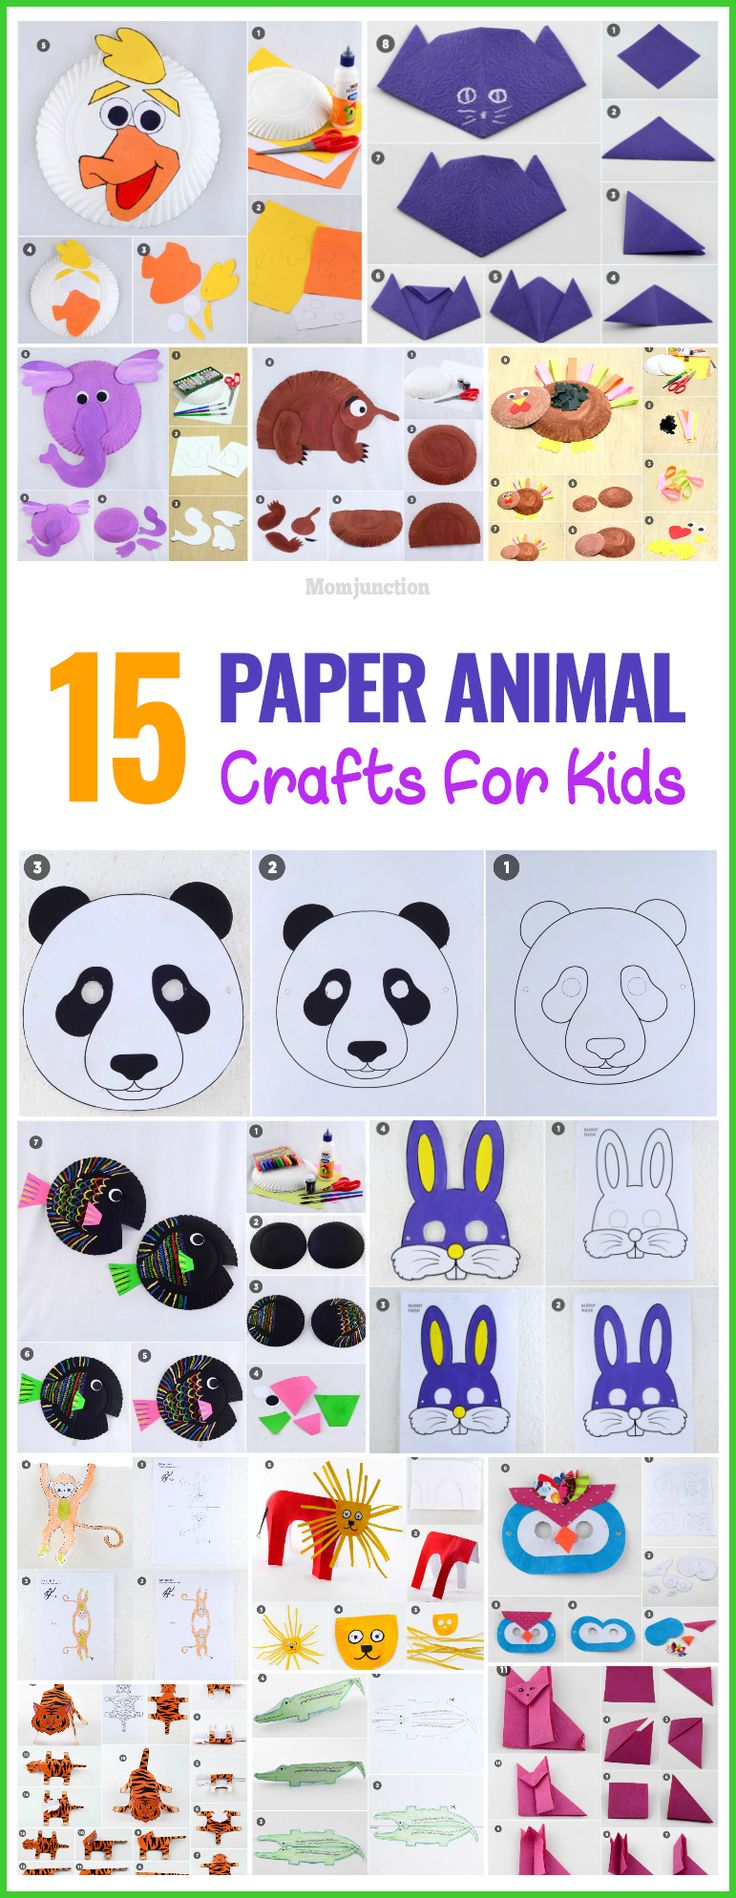 1000 images about kids craft ideas on pinterest crafts for Fun crafts for kids of all ages